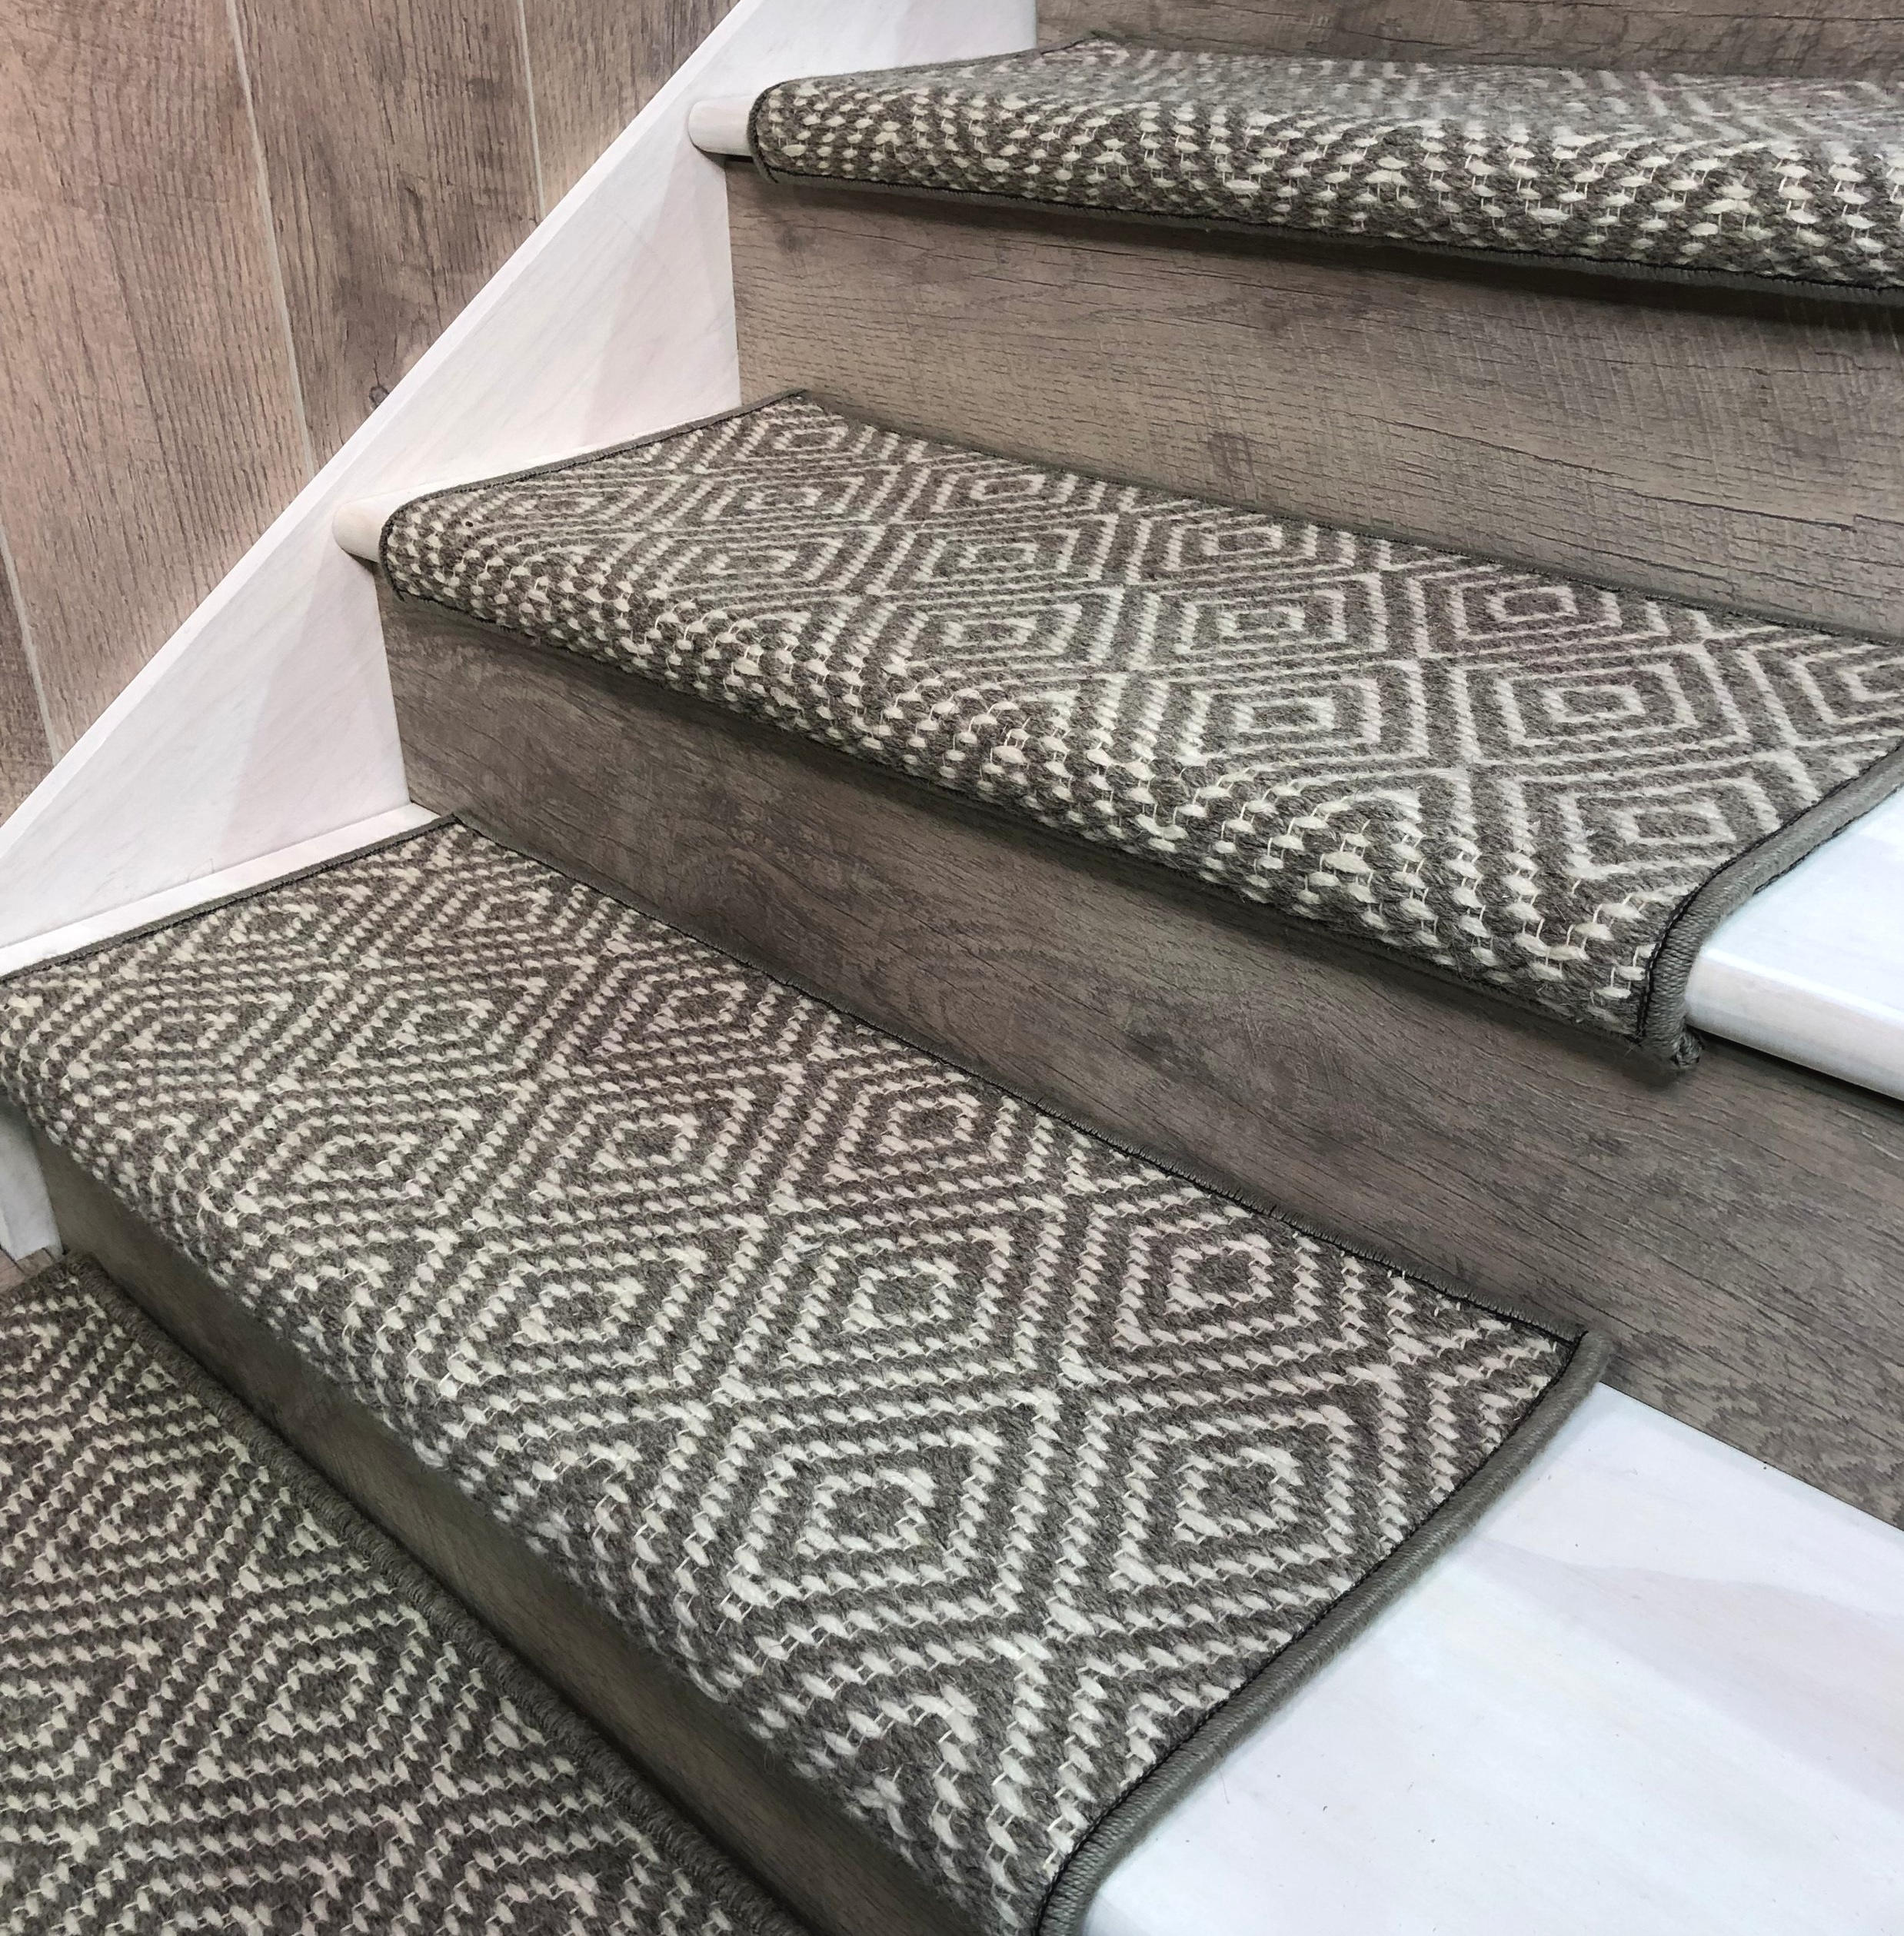 """Bullnose ROUND EDGE stair tread shown in Grey """"TAHOE"""" by J MISH."""